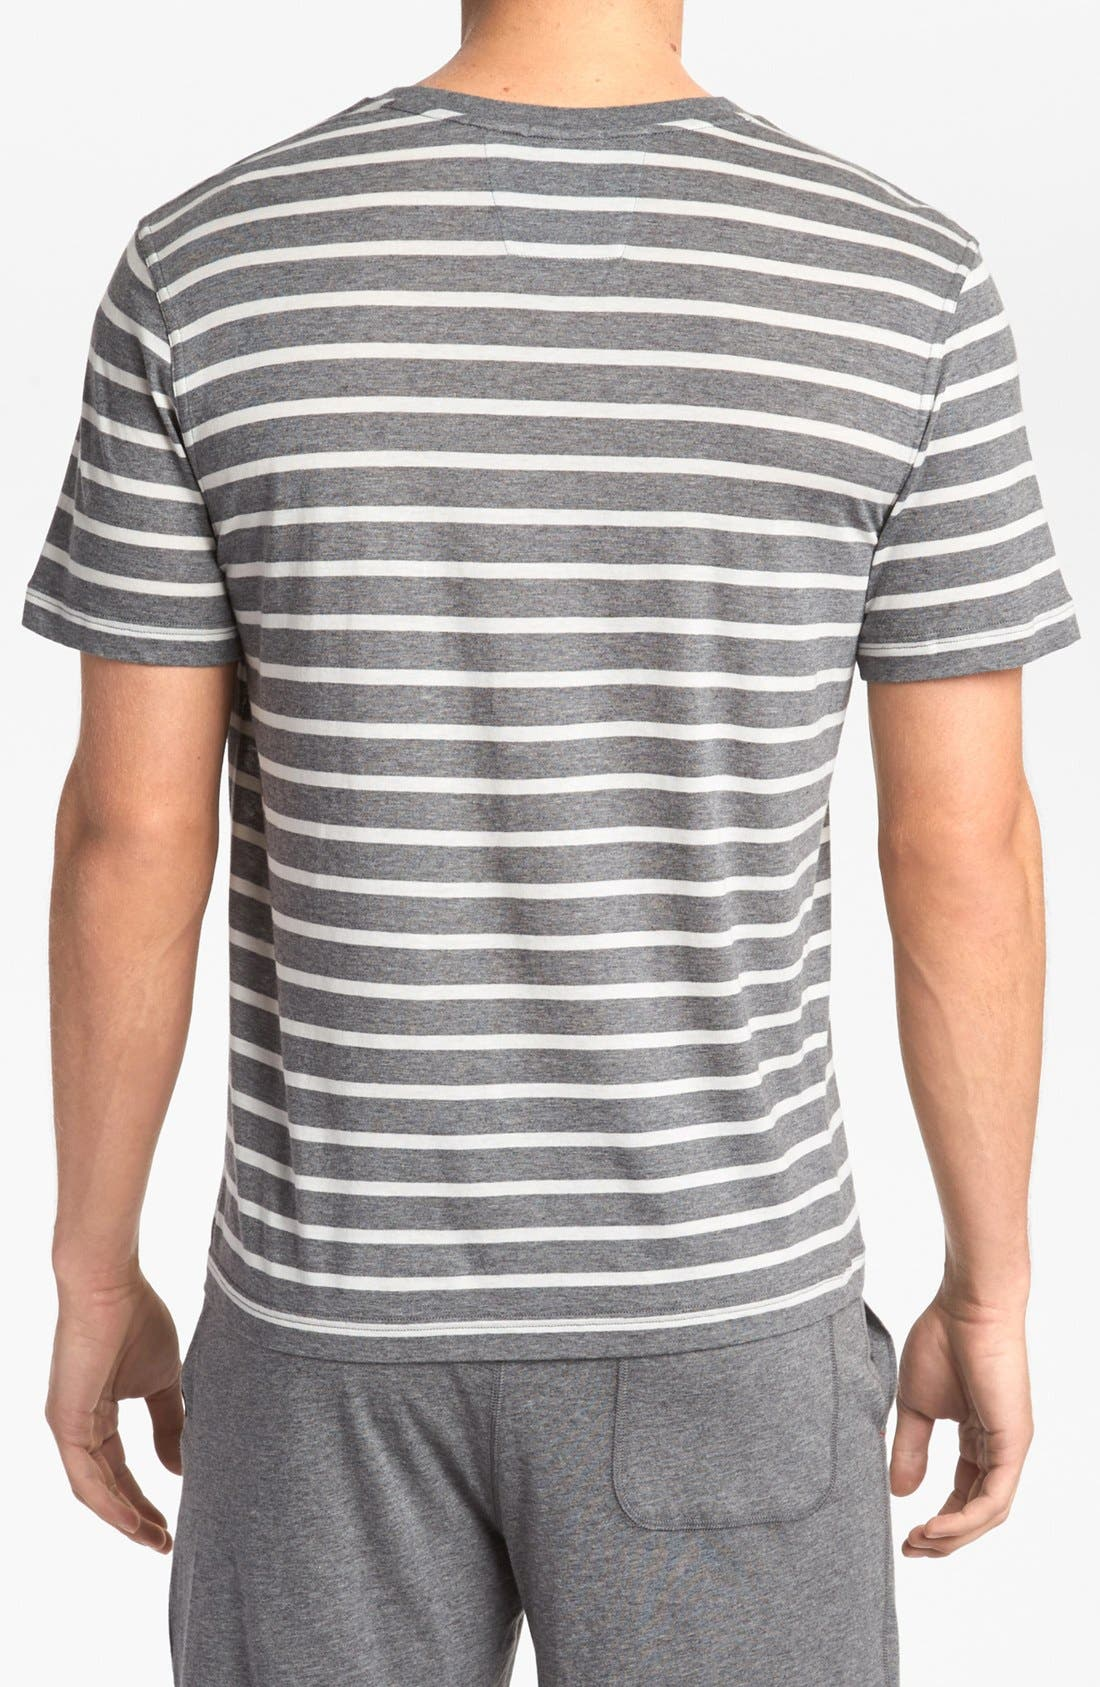 Alternate Image 2  - Daniel Buchler Cotton/Modal Blend T-Shirt